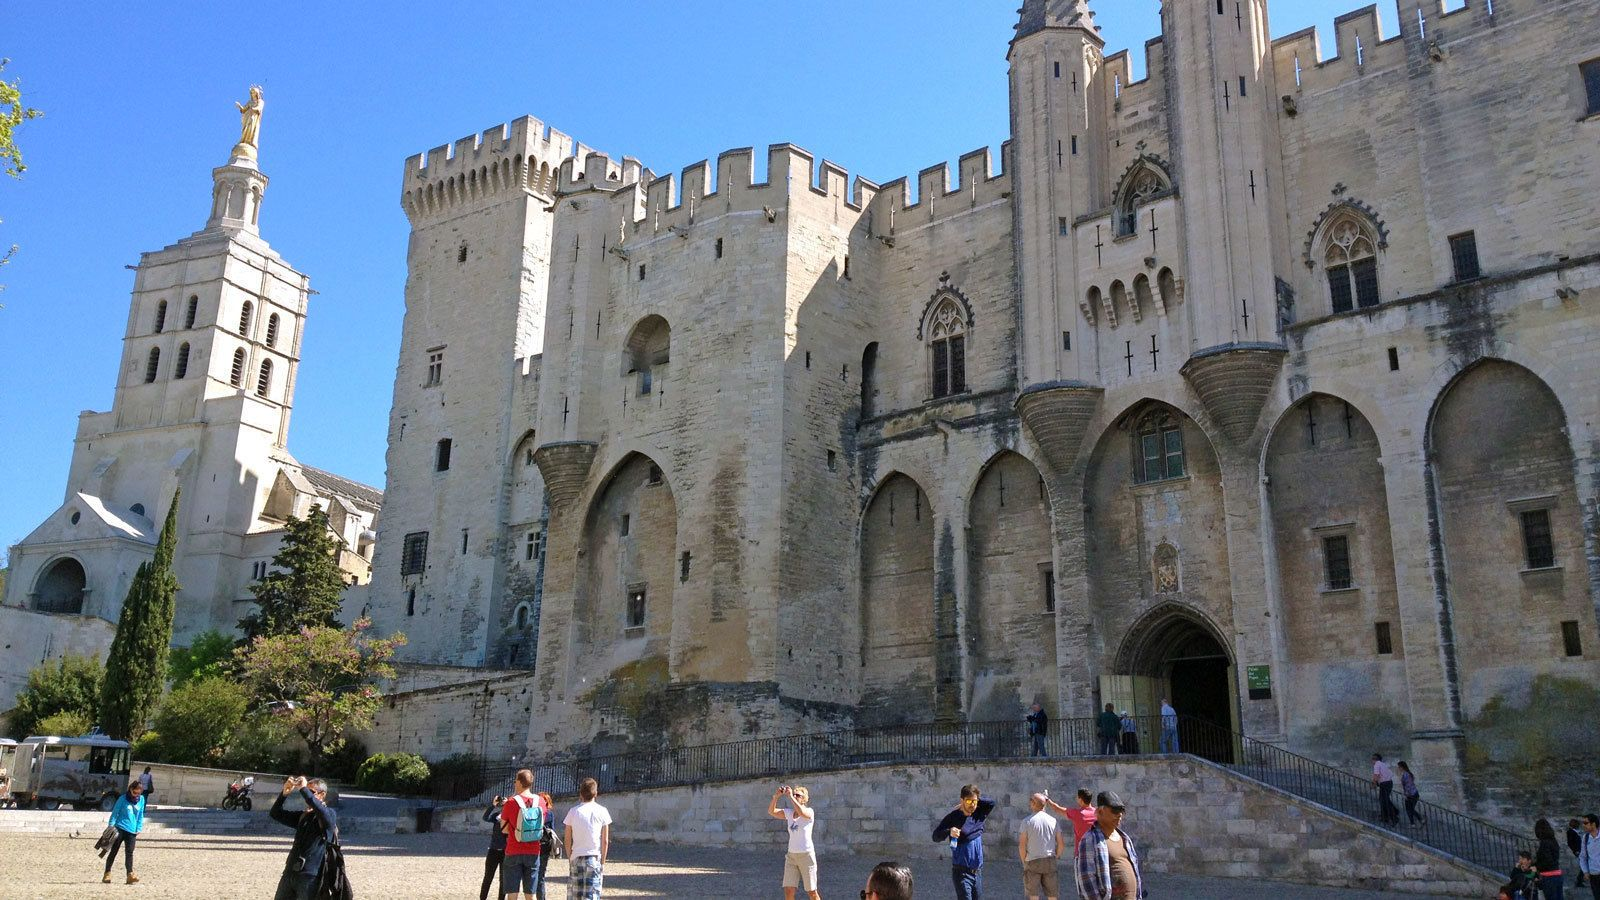 walking by old castle walls and towers in France